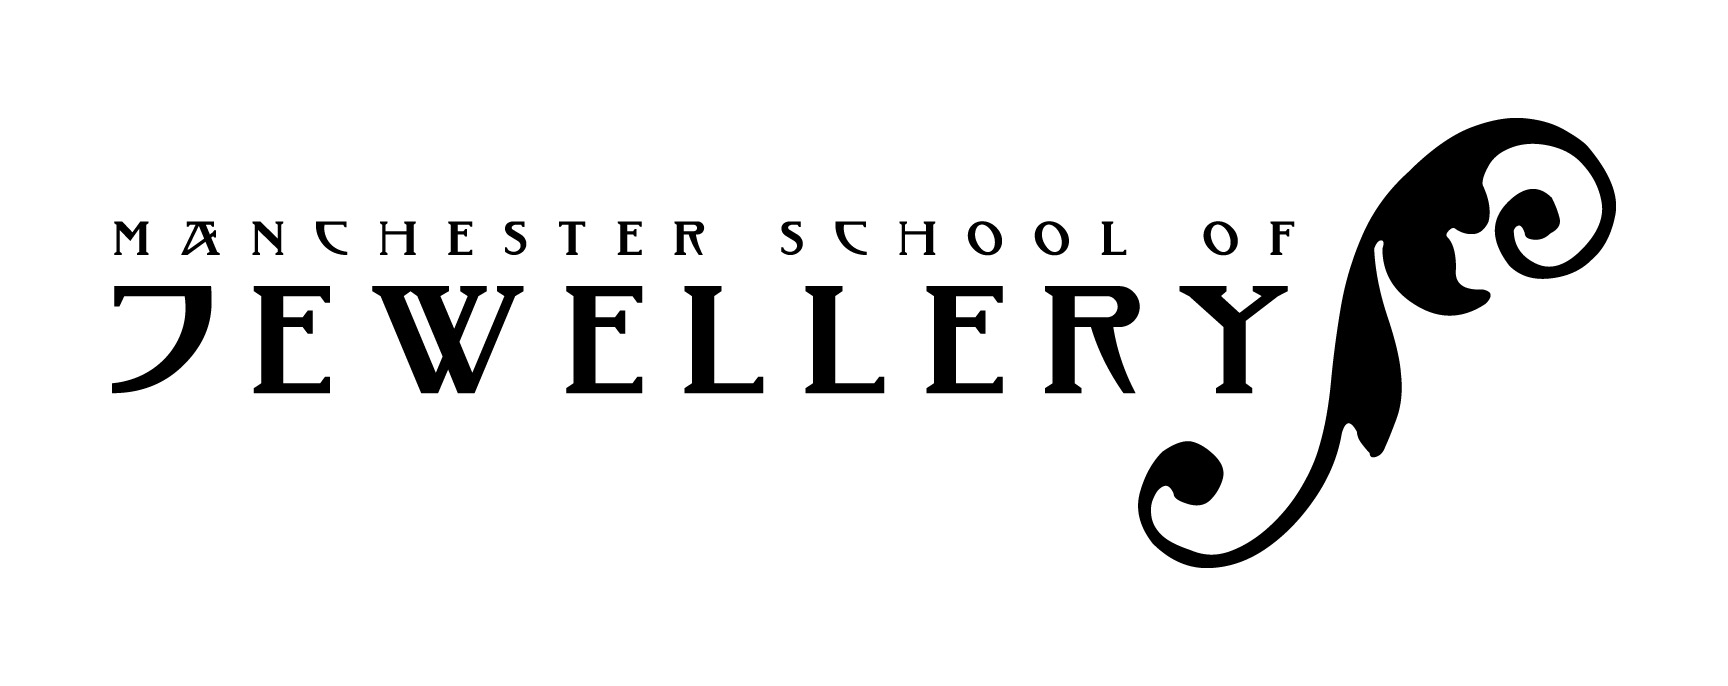 Manchester School of Jewellery offers one day and short courses for enthusiastic beginners to skilled makers looking to broaden their knowledge in a variety of jewellery techniques and allied skills.